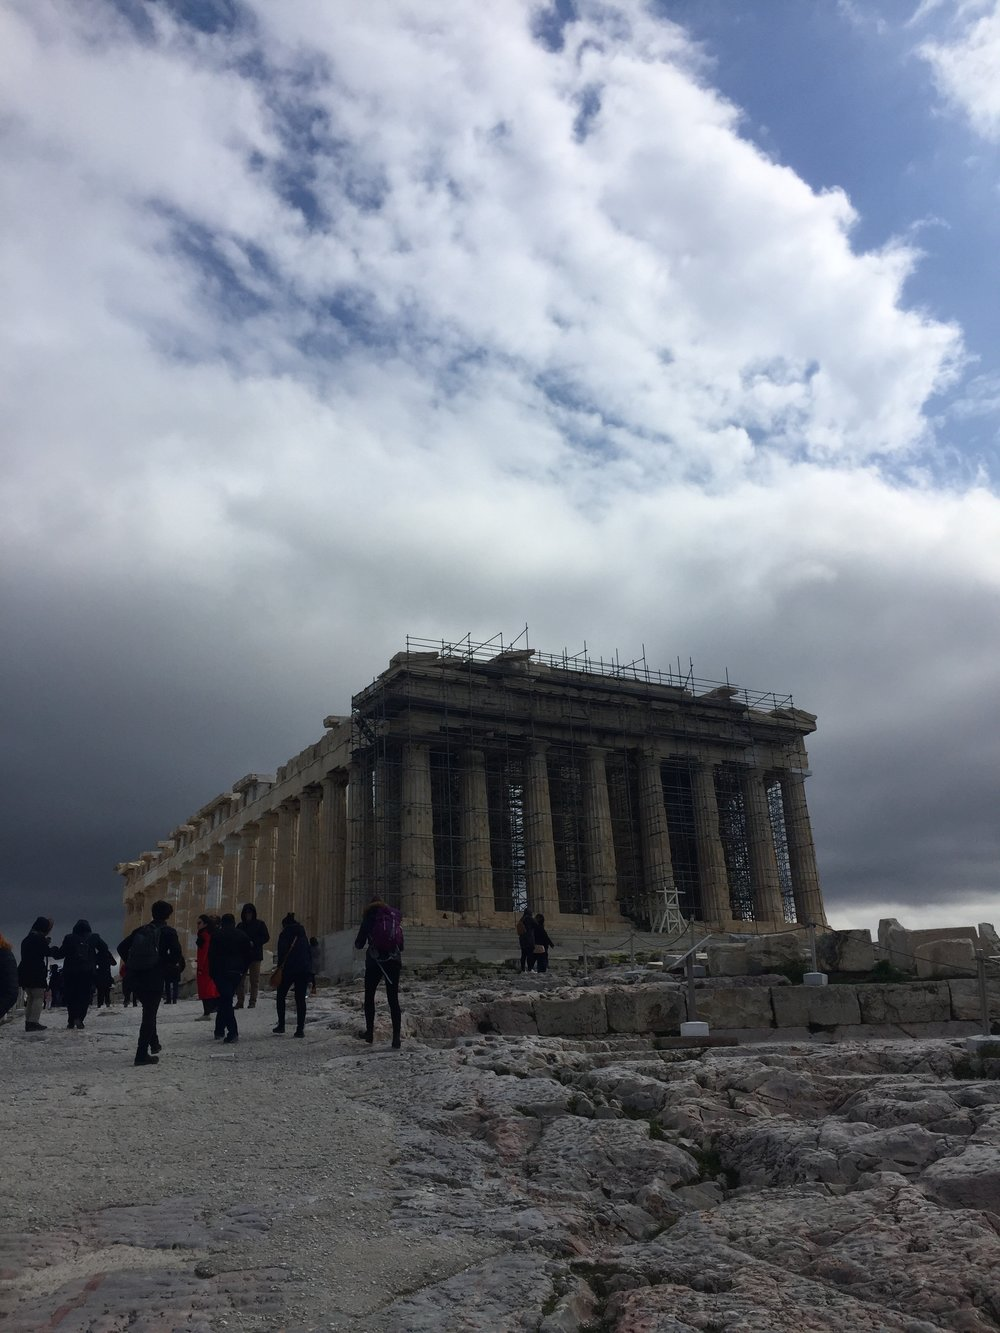 The Parthenon (first constructed around 447 B.C.E.) was dedicated to the goddess Athena at the height of the Athenian Empire's power.